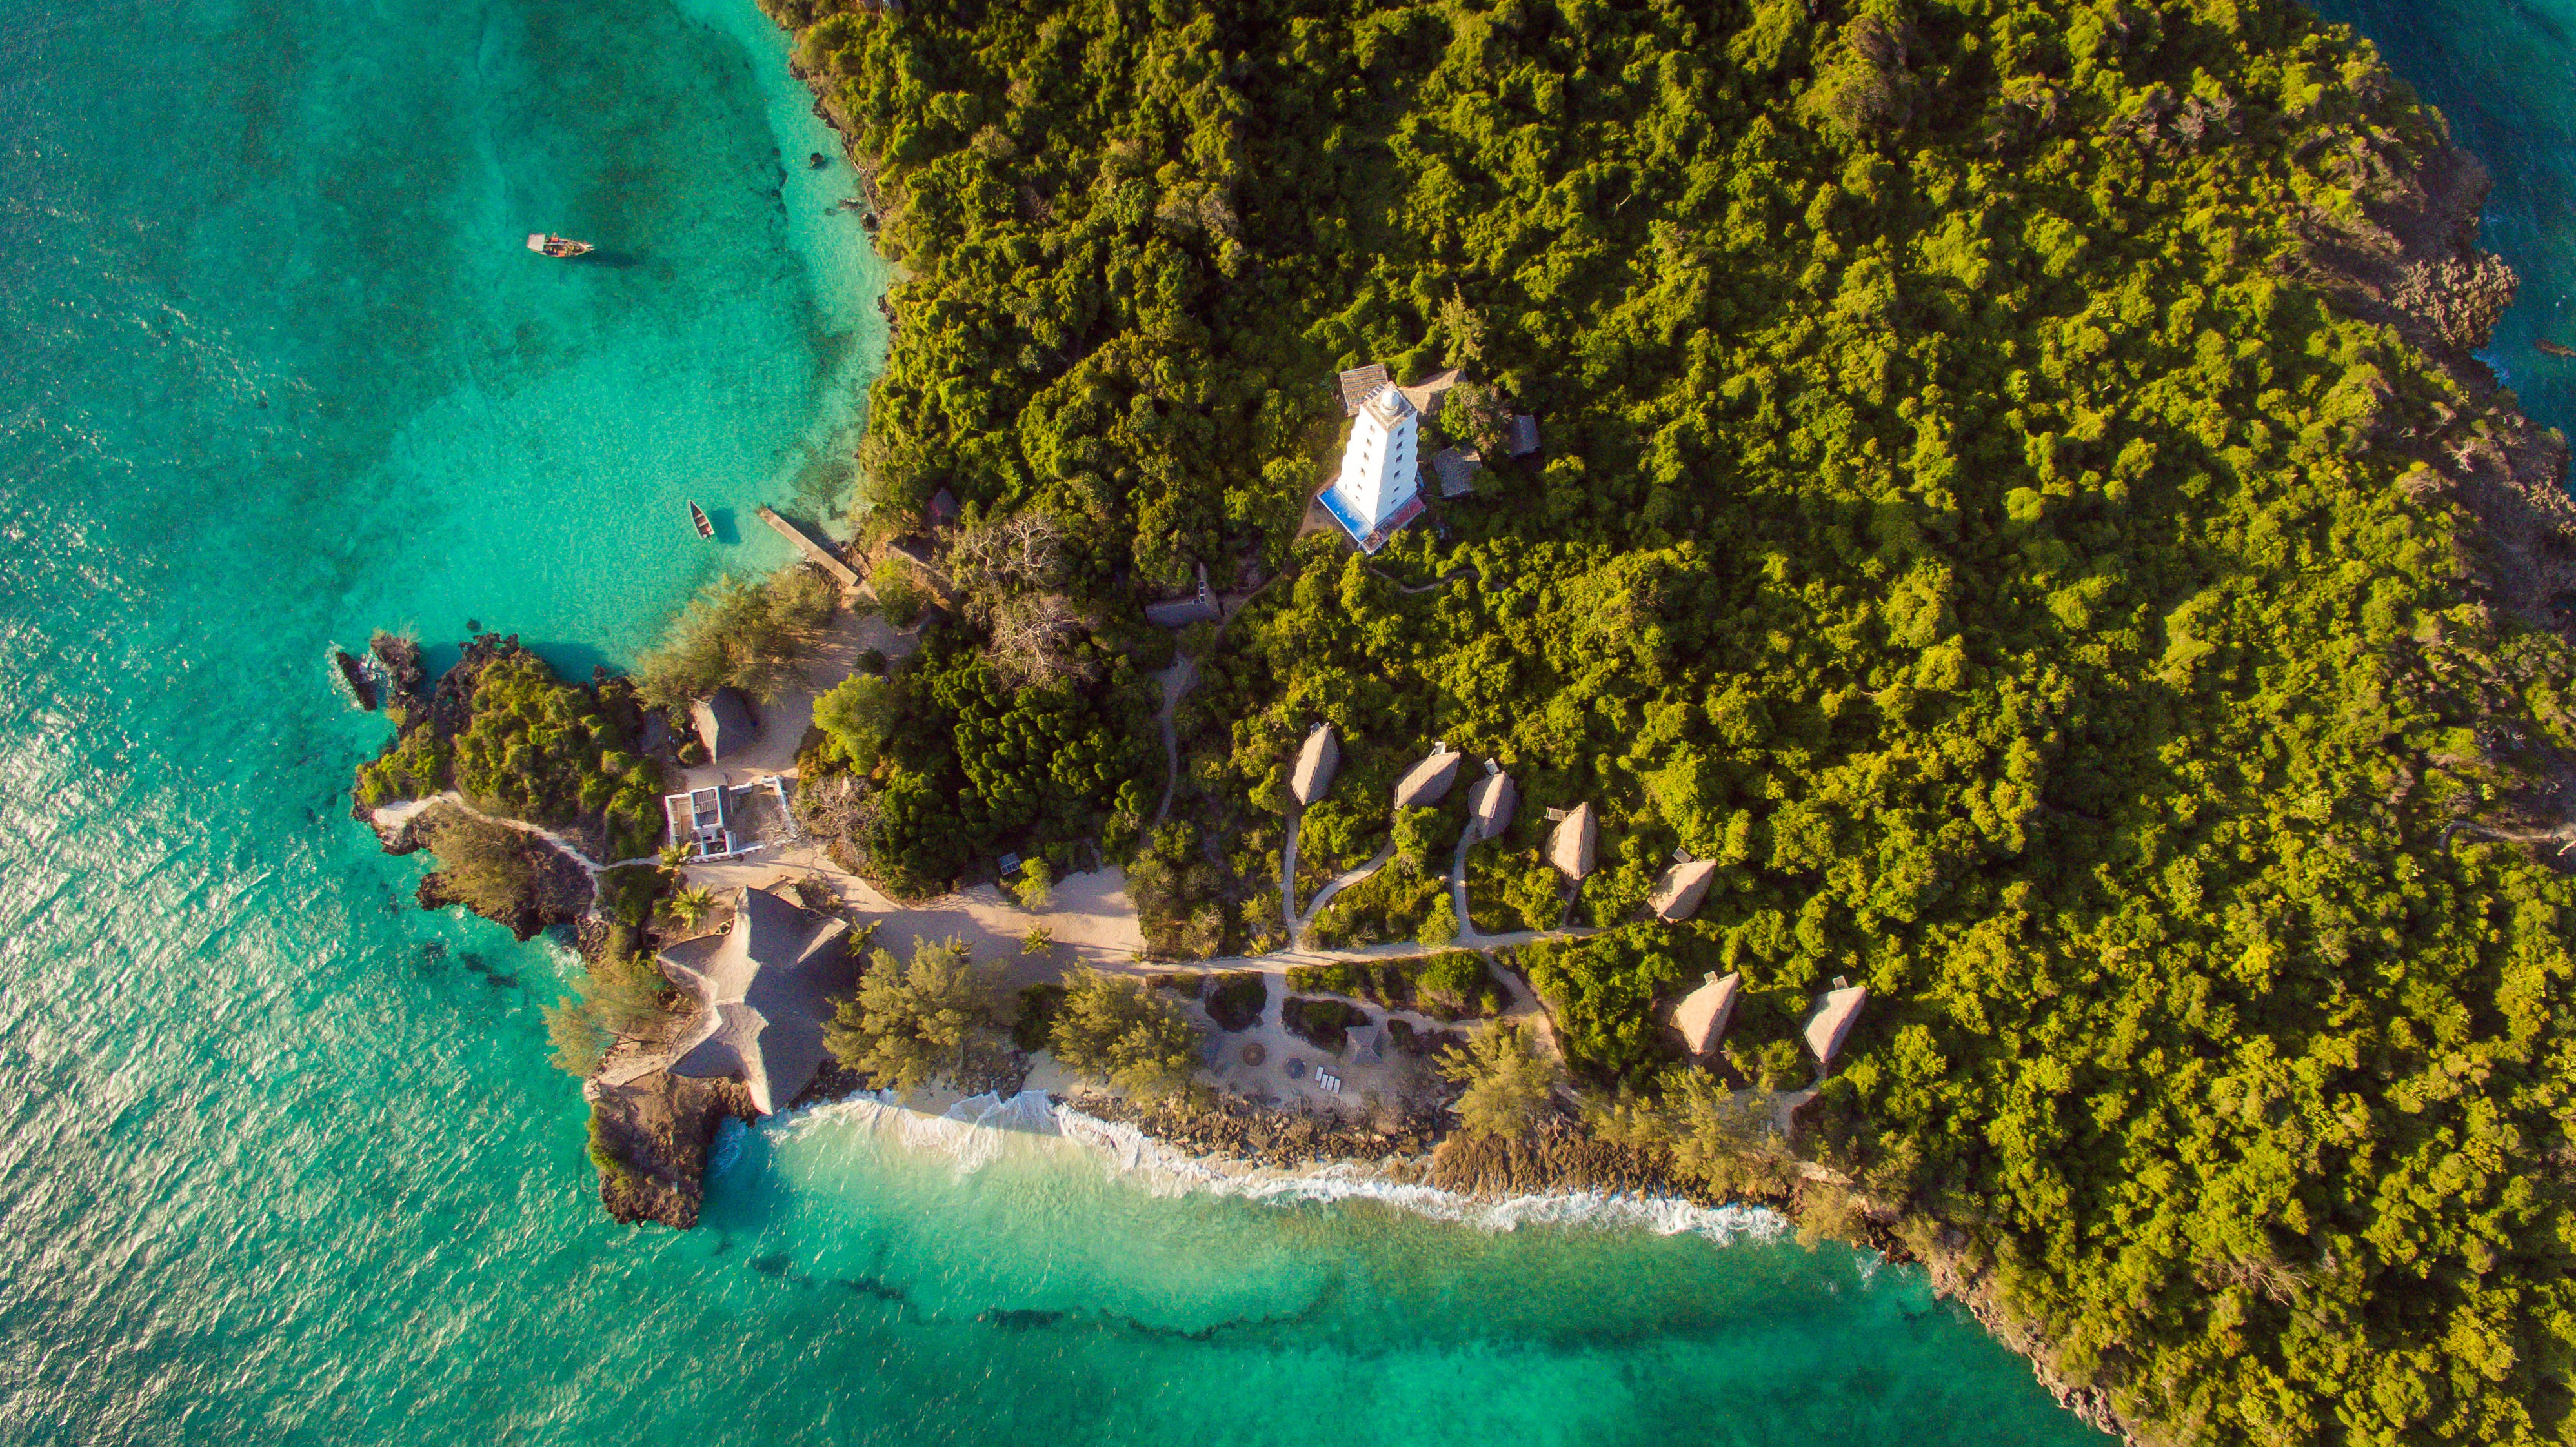 Chumbe Island, off Zanzibar, is surrounded by coral reefs